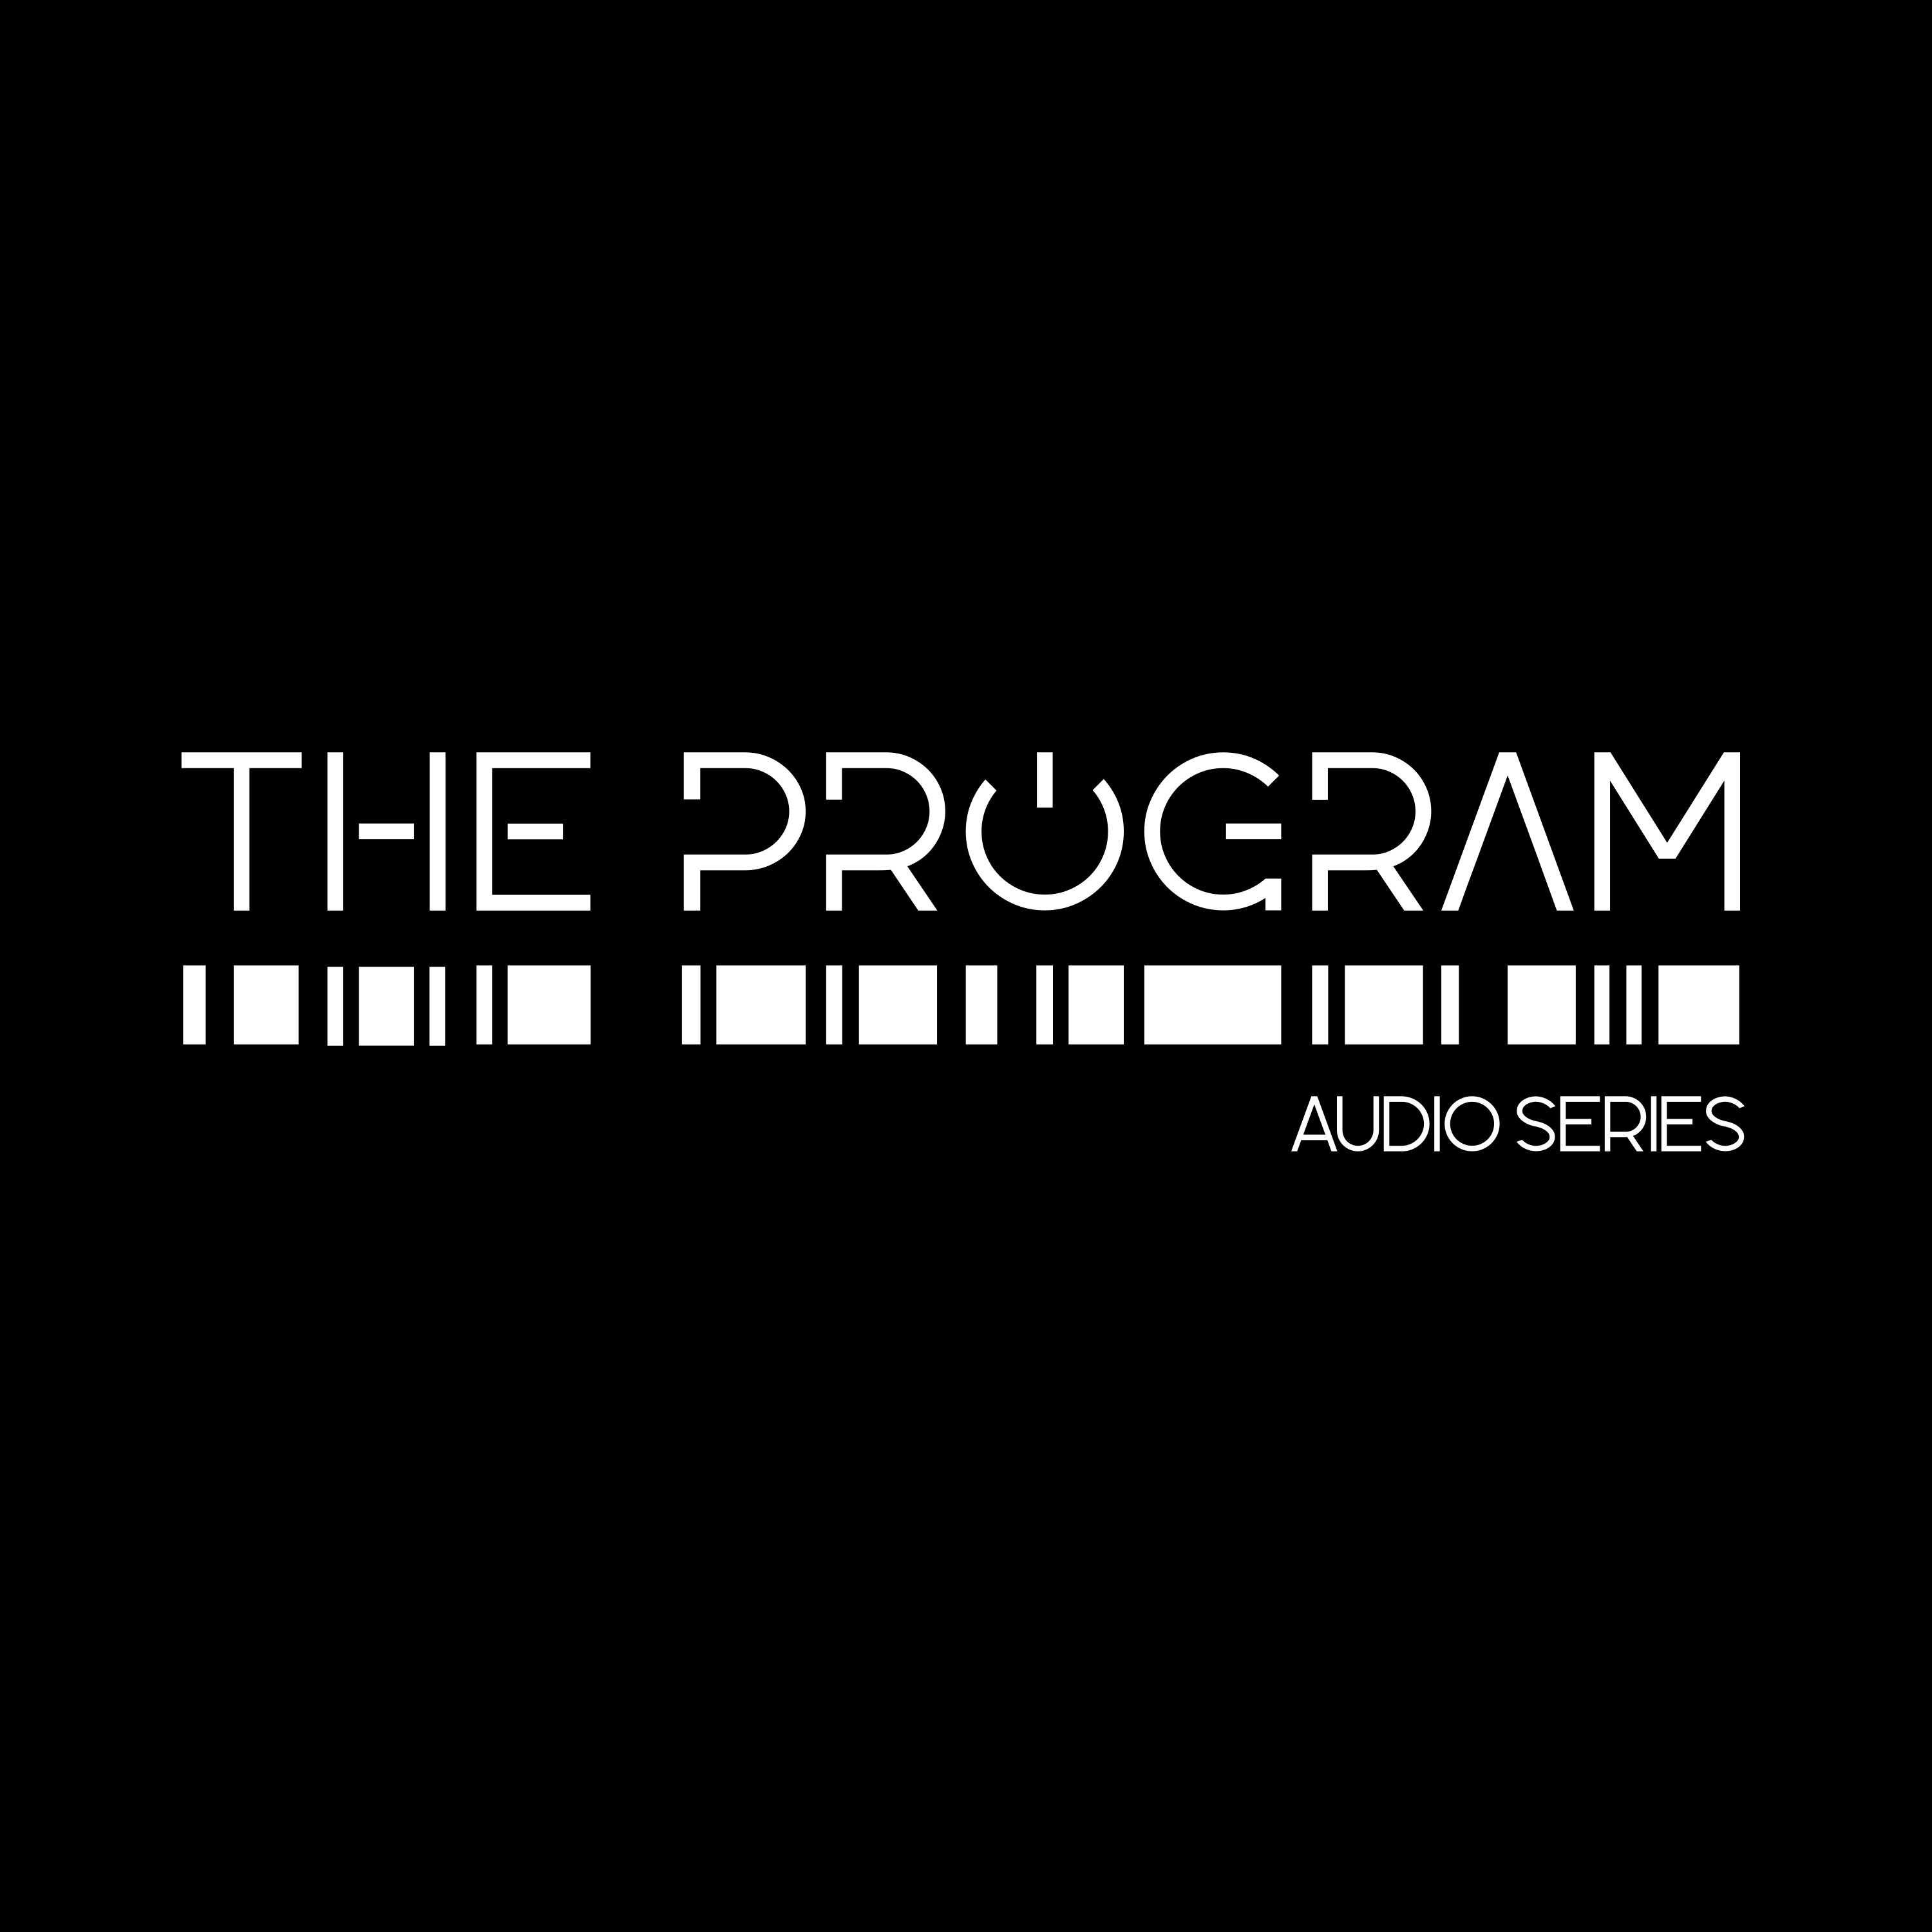 """The Program audio series"" Podcast"